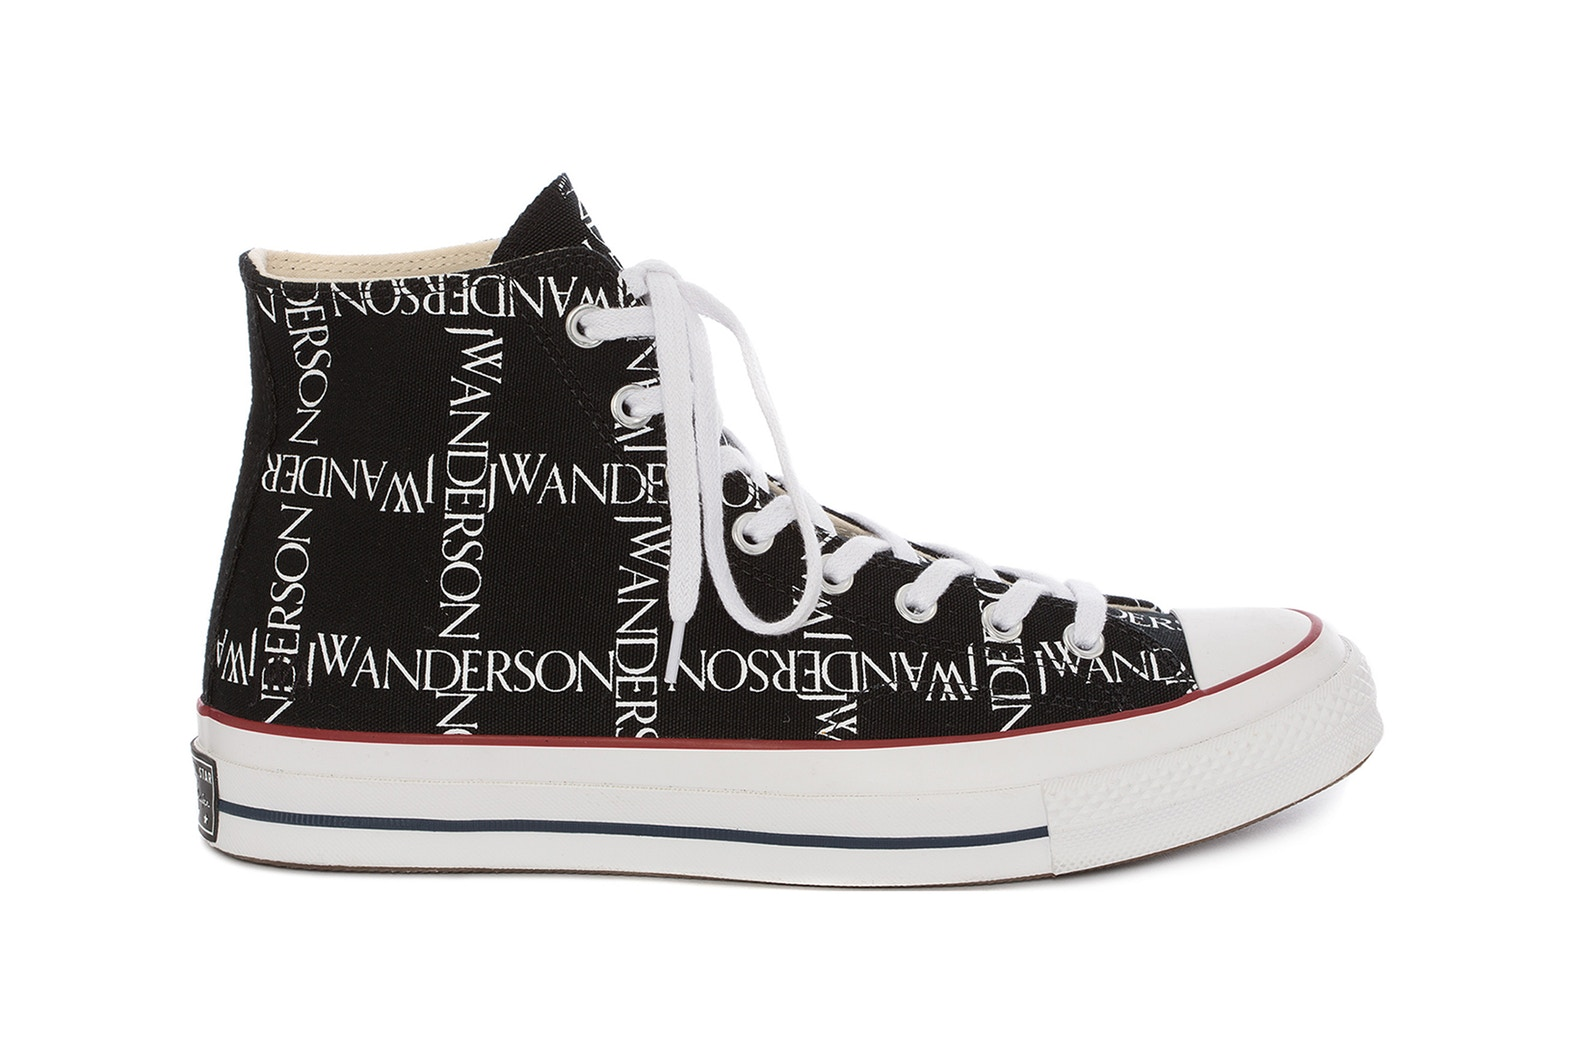 J.W. Anderson x Converse Announce Chuck Taylor All Star Collaborations